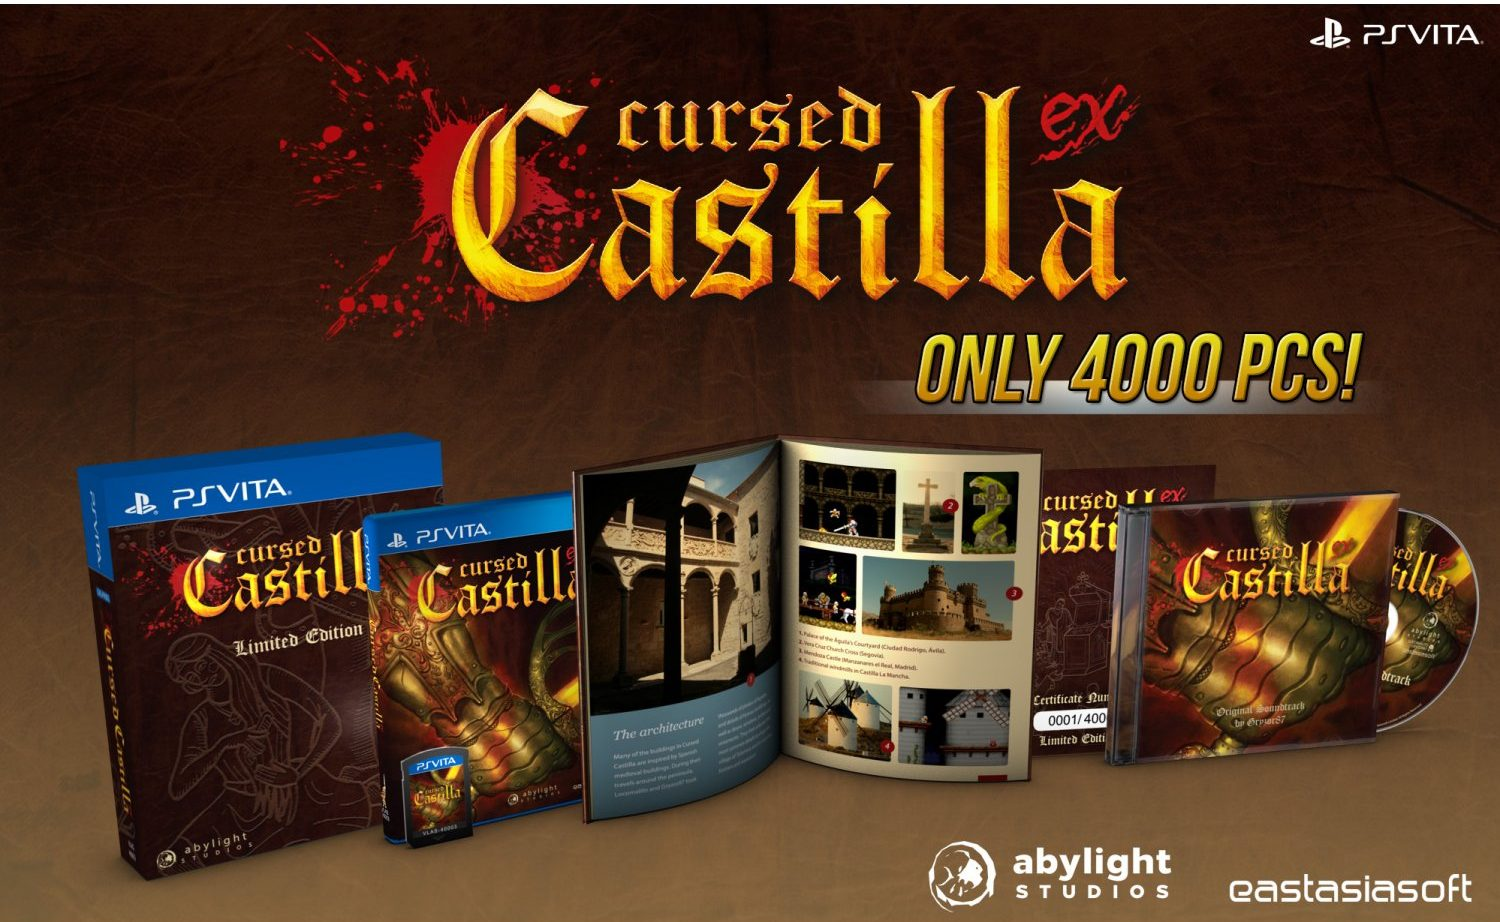 Exclusive Cursed Castilla EX Limited Edition for PlayStation Vita (PS Vita) available soon!